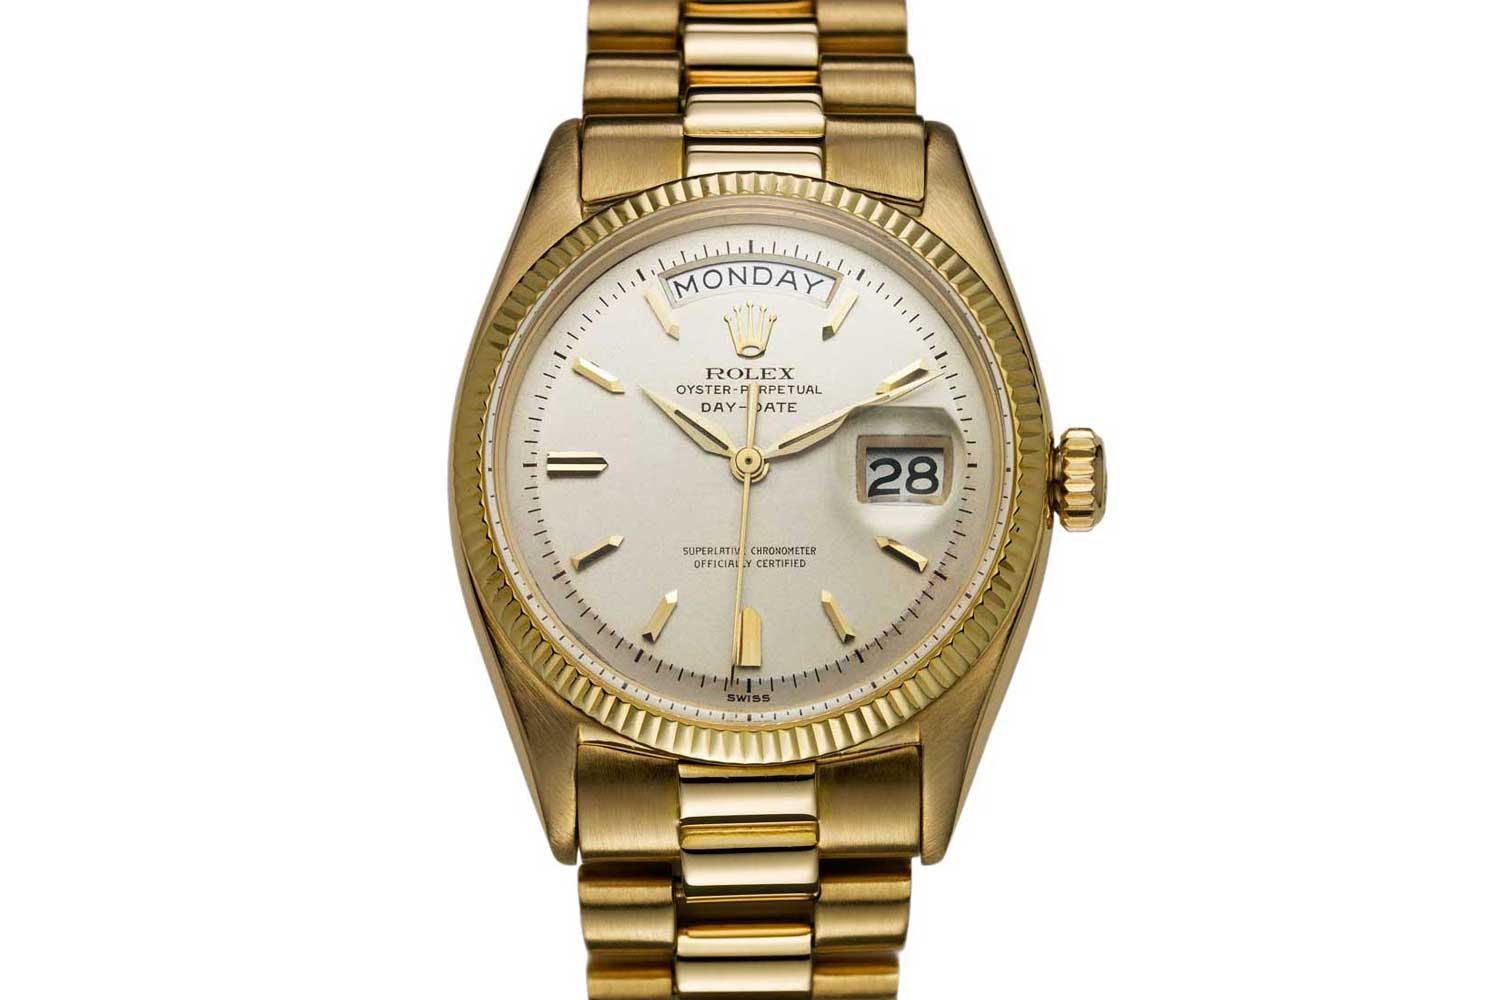 First model of the Rolex-Day-Date from 1956.